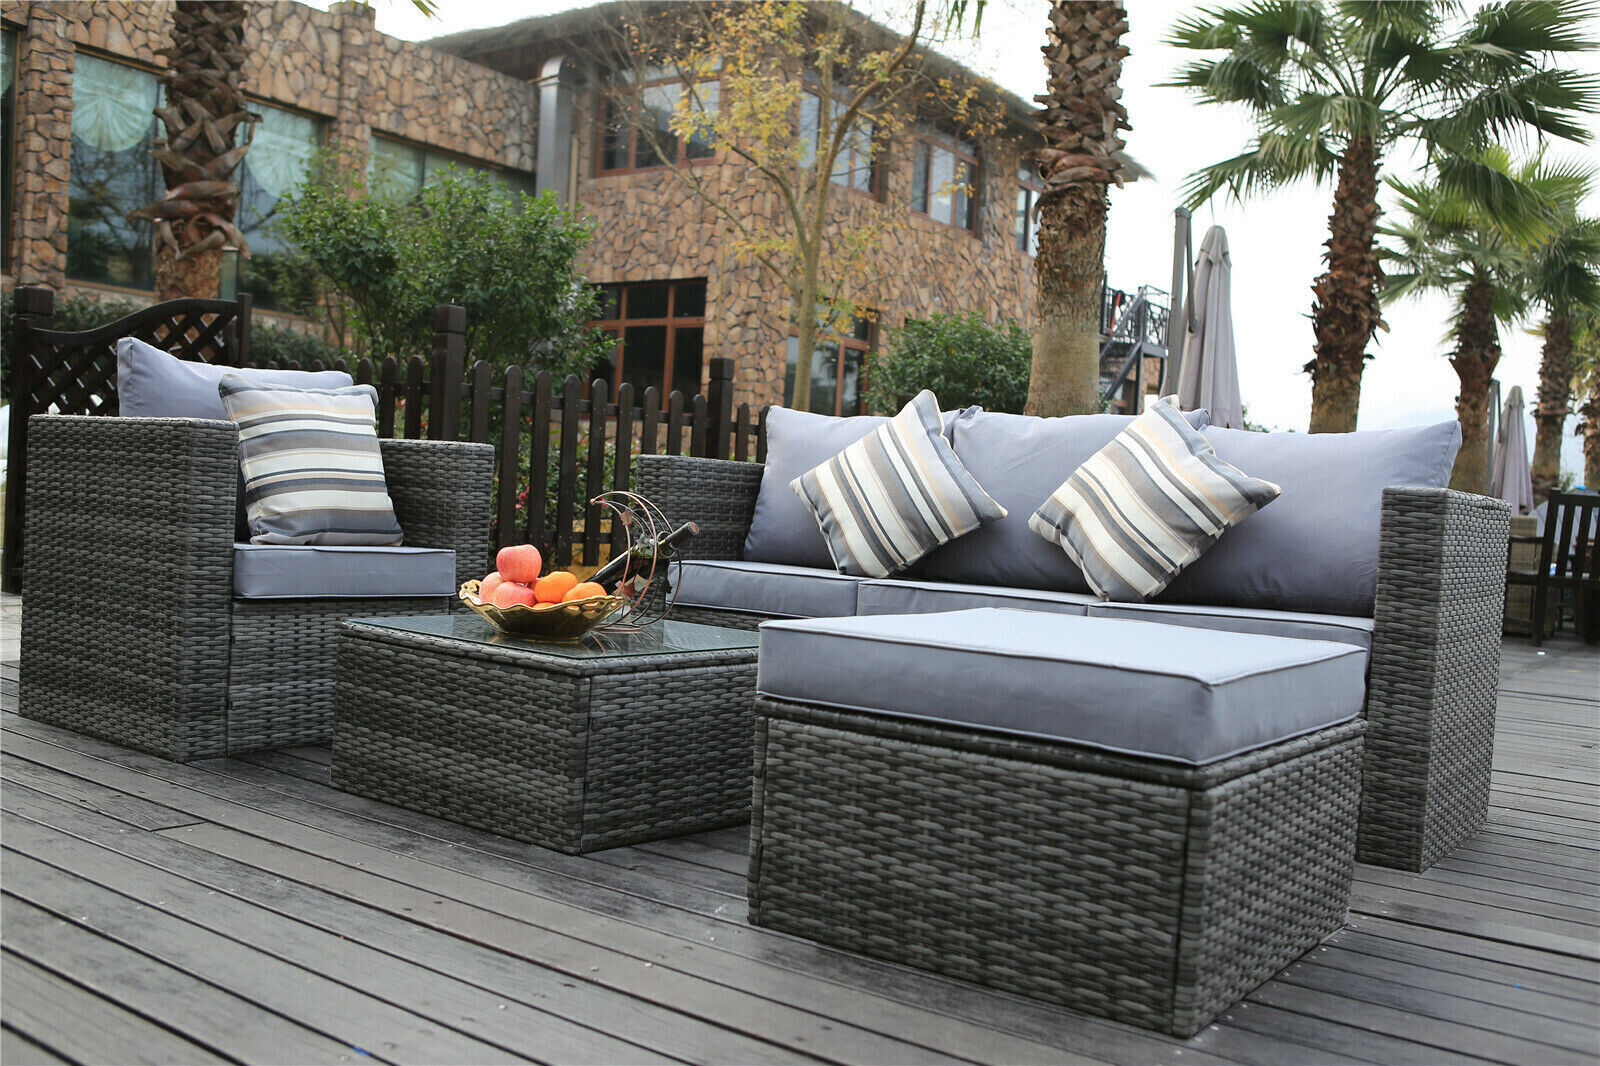 Garden Furniture - Yakoe Rattan Conservatory Garden Furniture 5 Seater Sofa Set Outdoors Grey